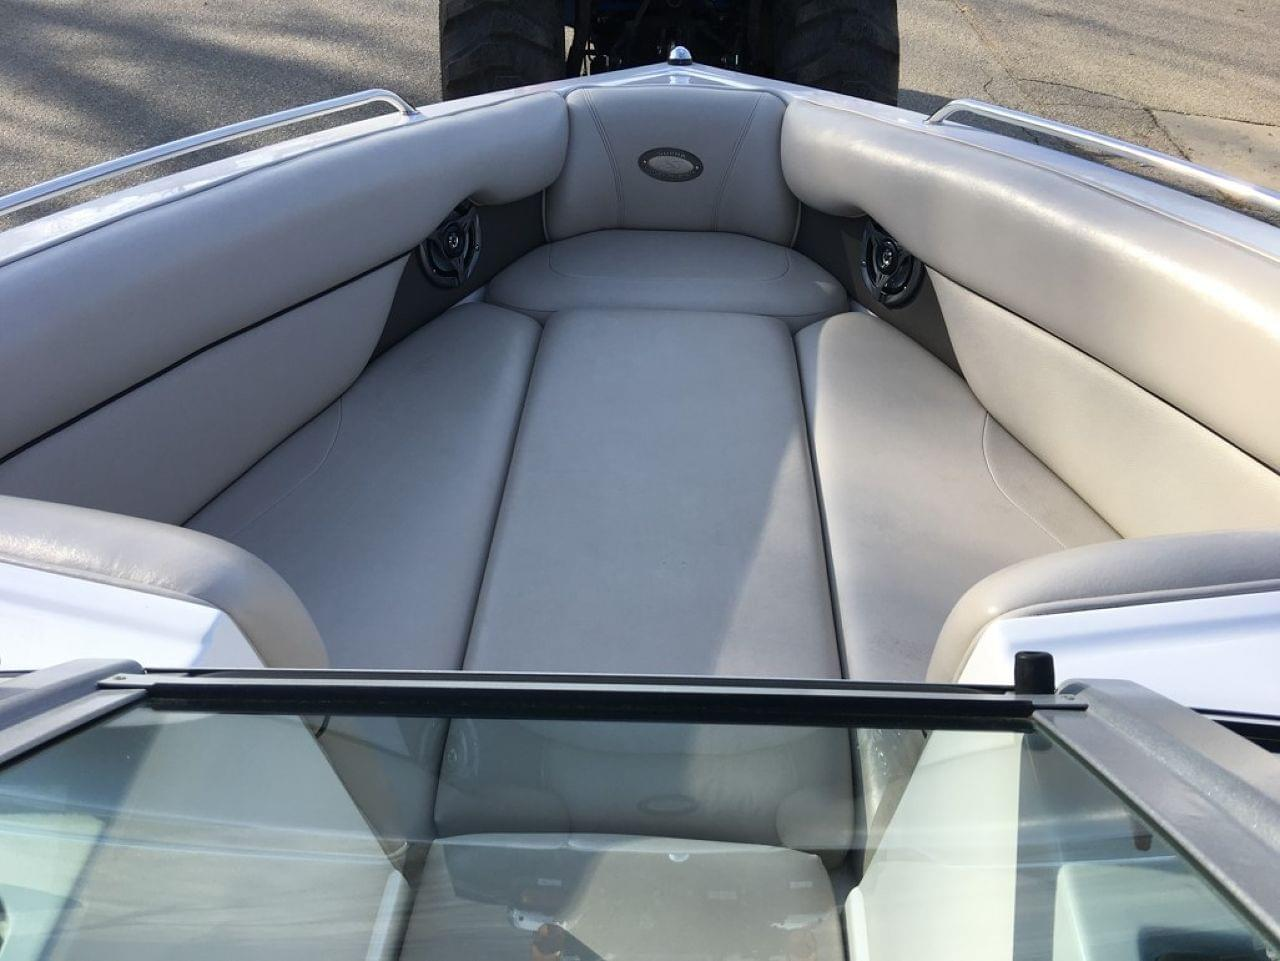 Used 2005 Supra Sunsport 24V, Stock #UBL2716 - The Boat House